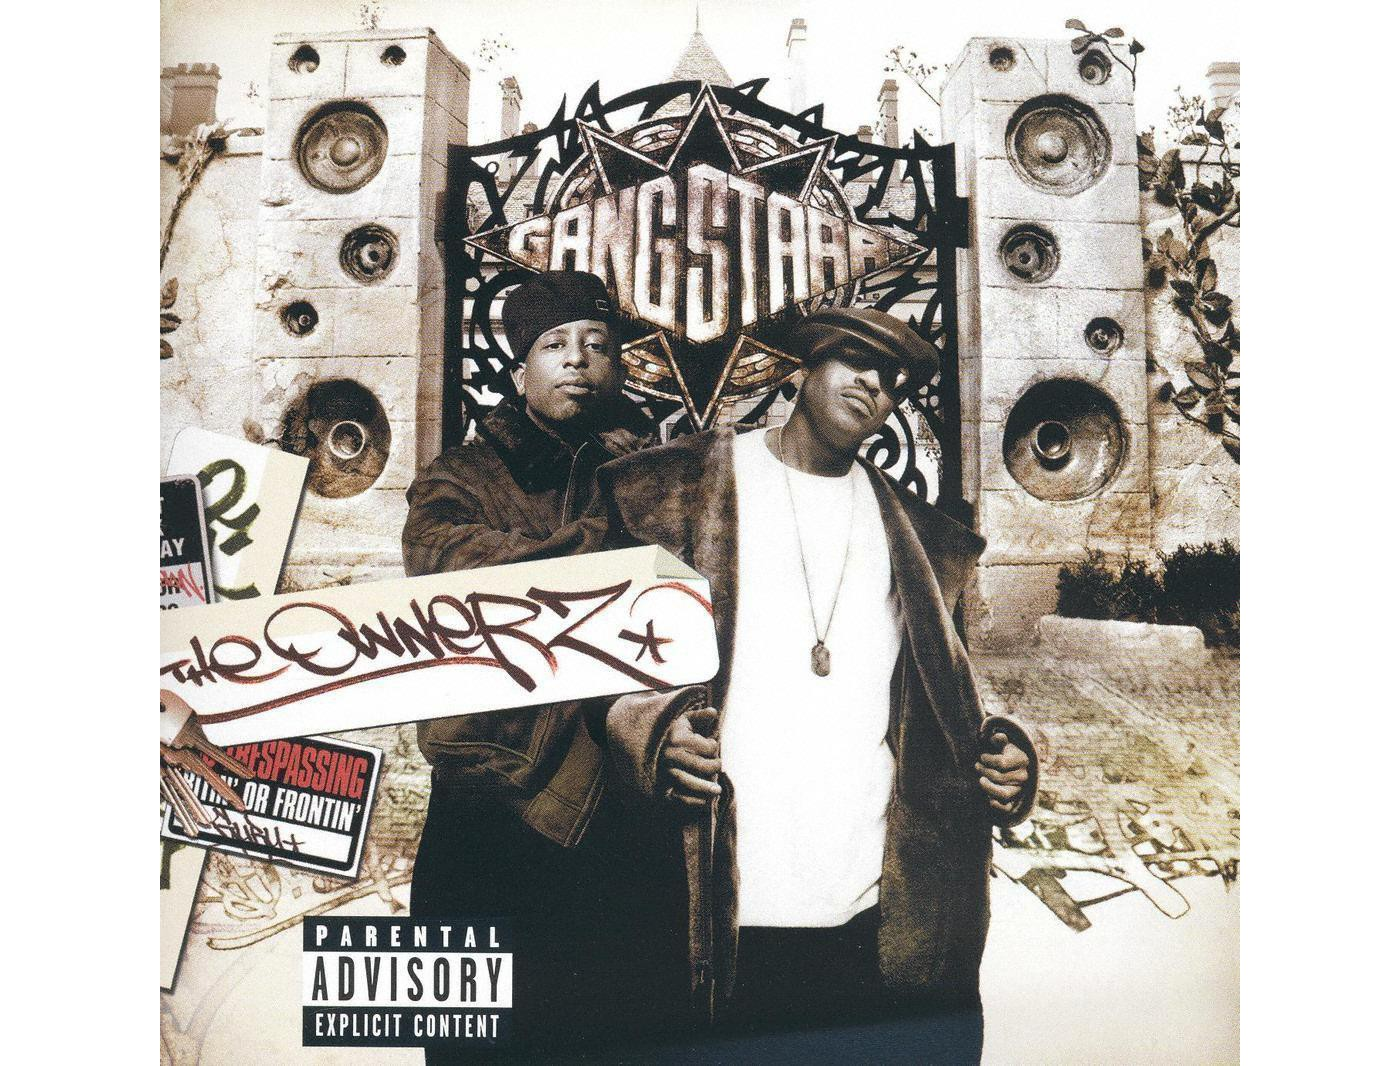 Gang Starr -The Ownerz